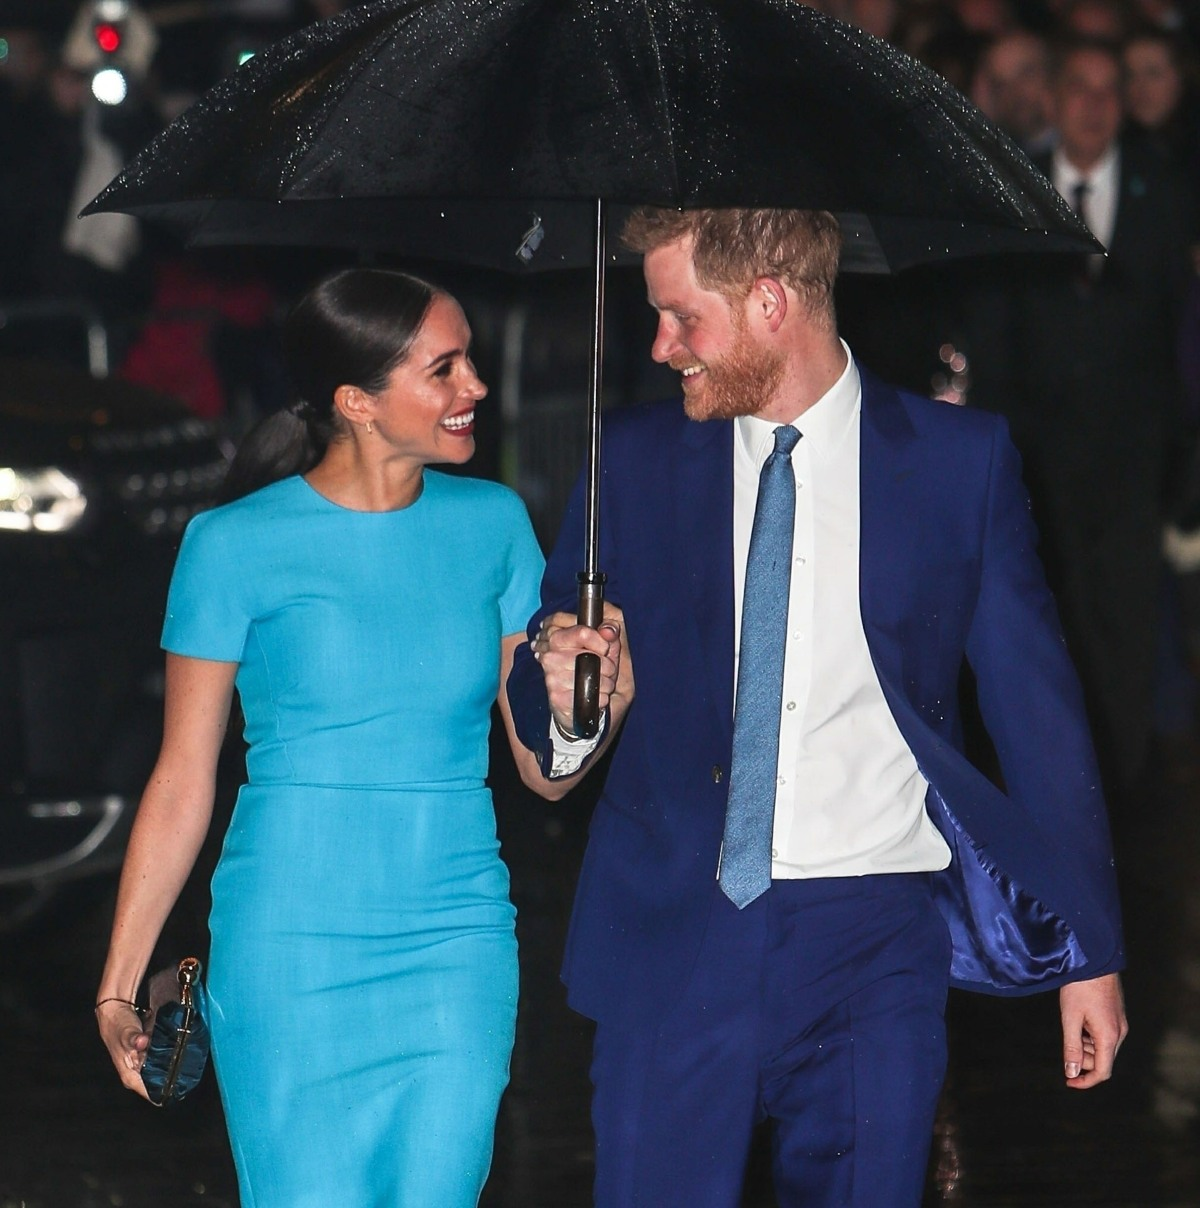 Prince Harry and Meghan Markle attend The Endeavour Fund Awards at Mansion House